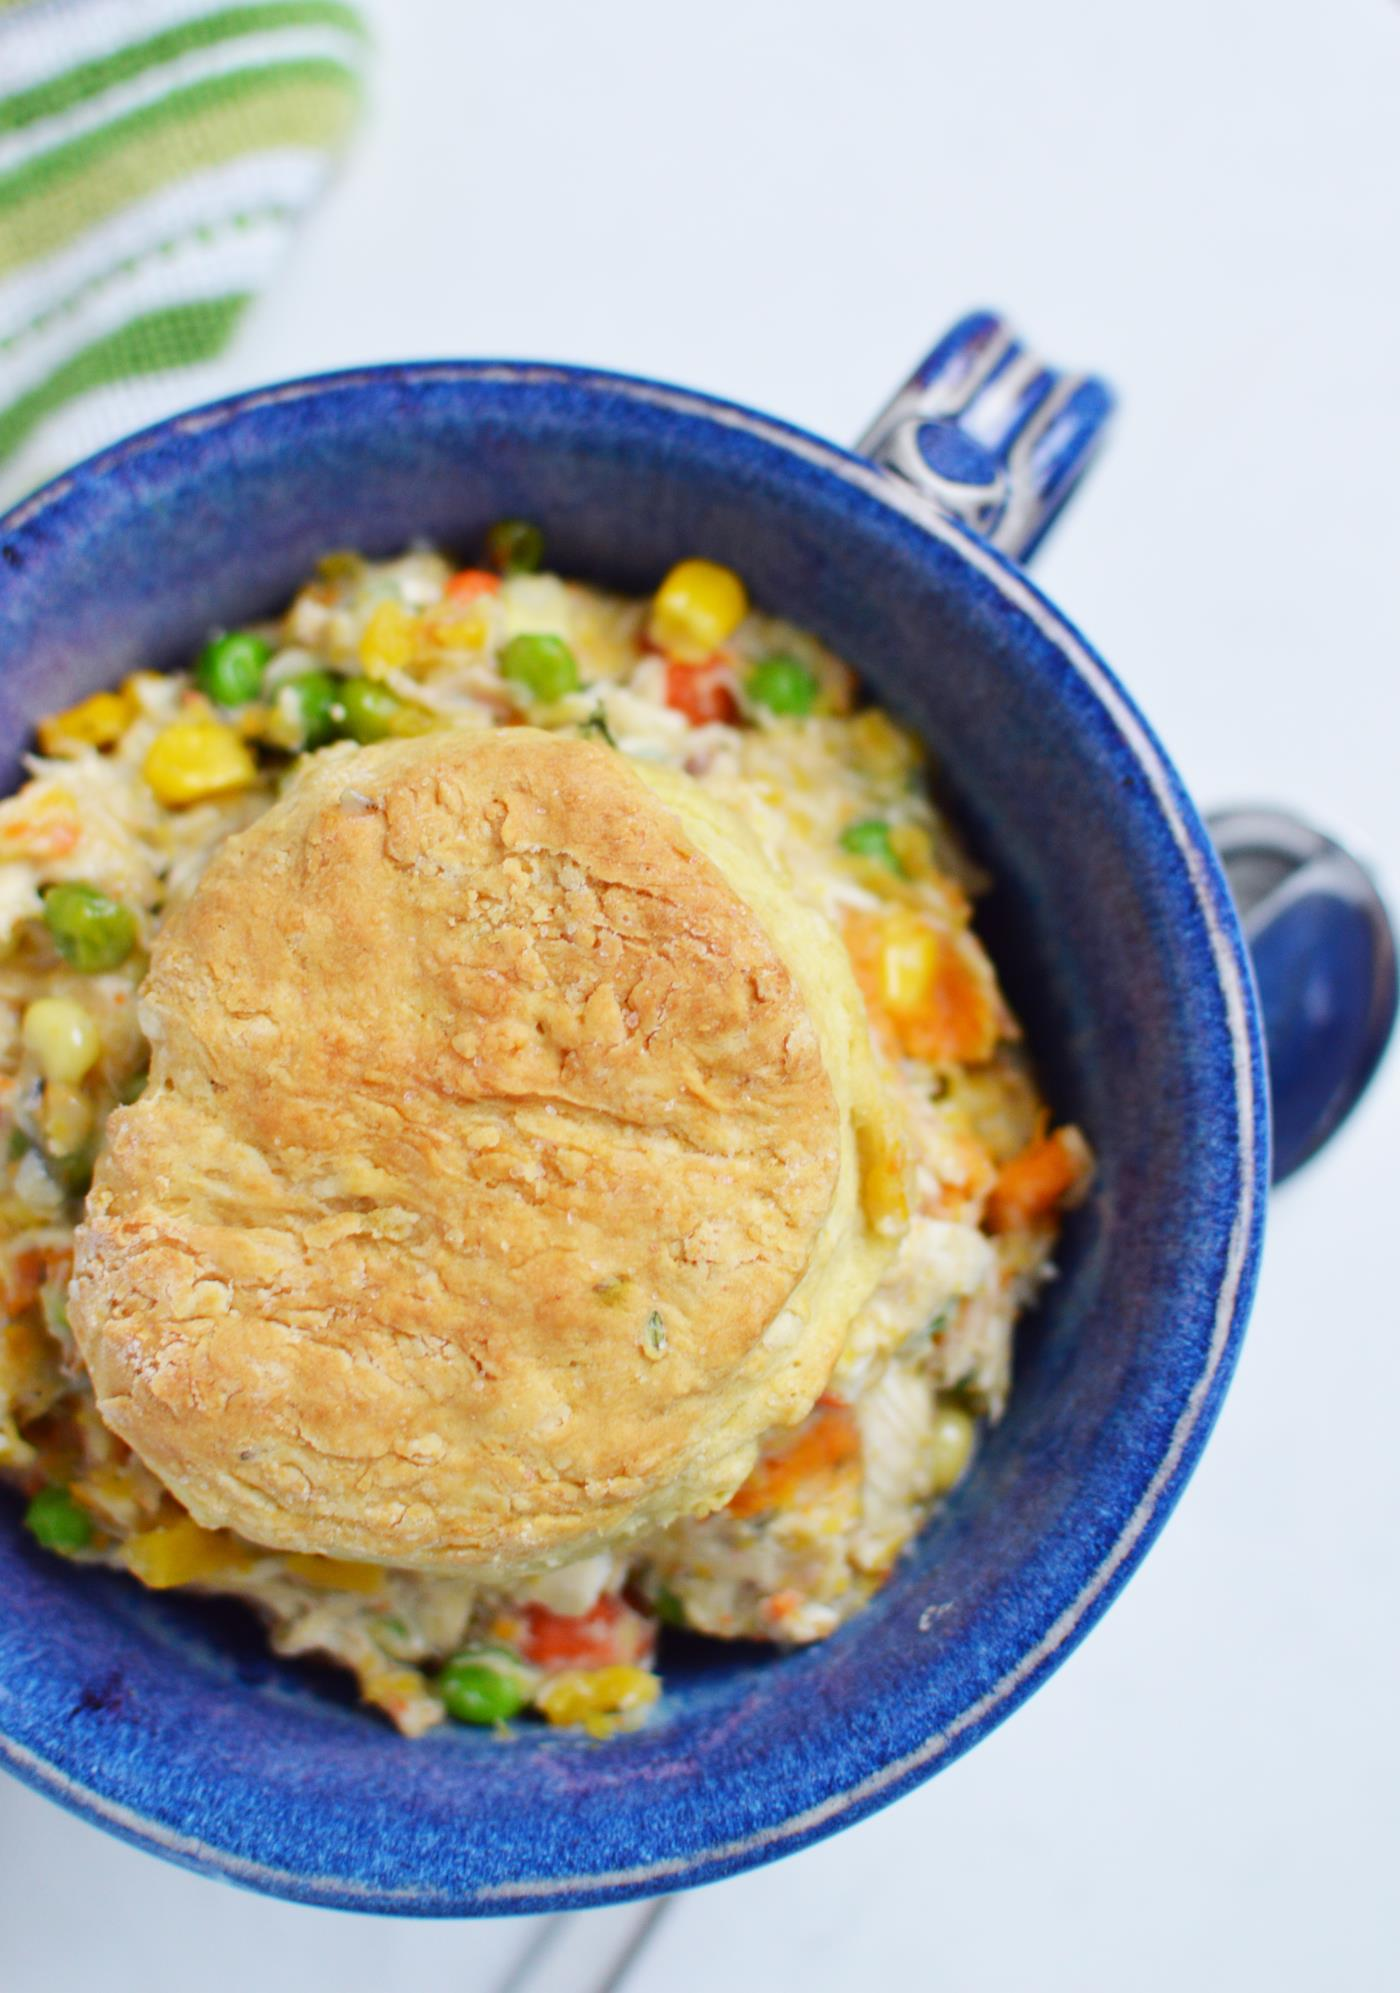 Skillet chicken biscuit pot pie recipe